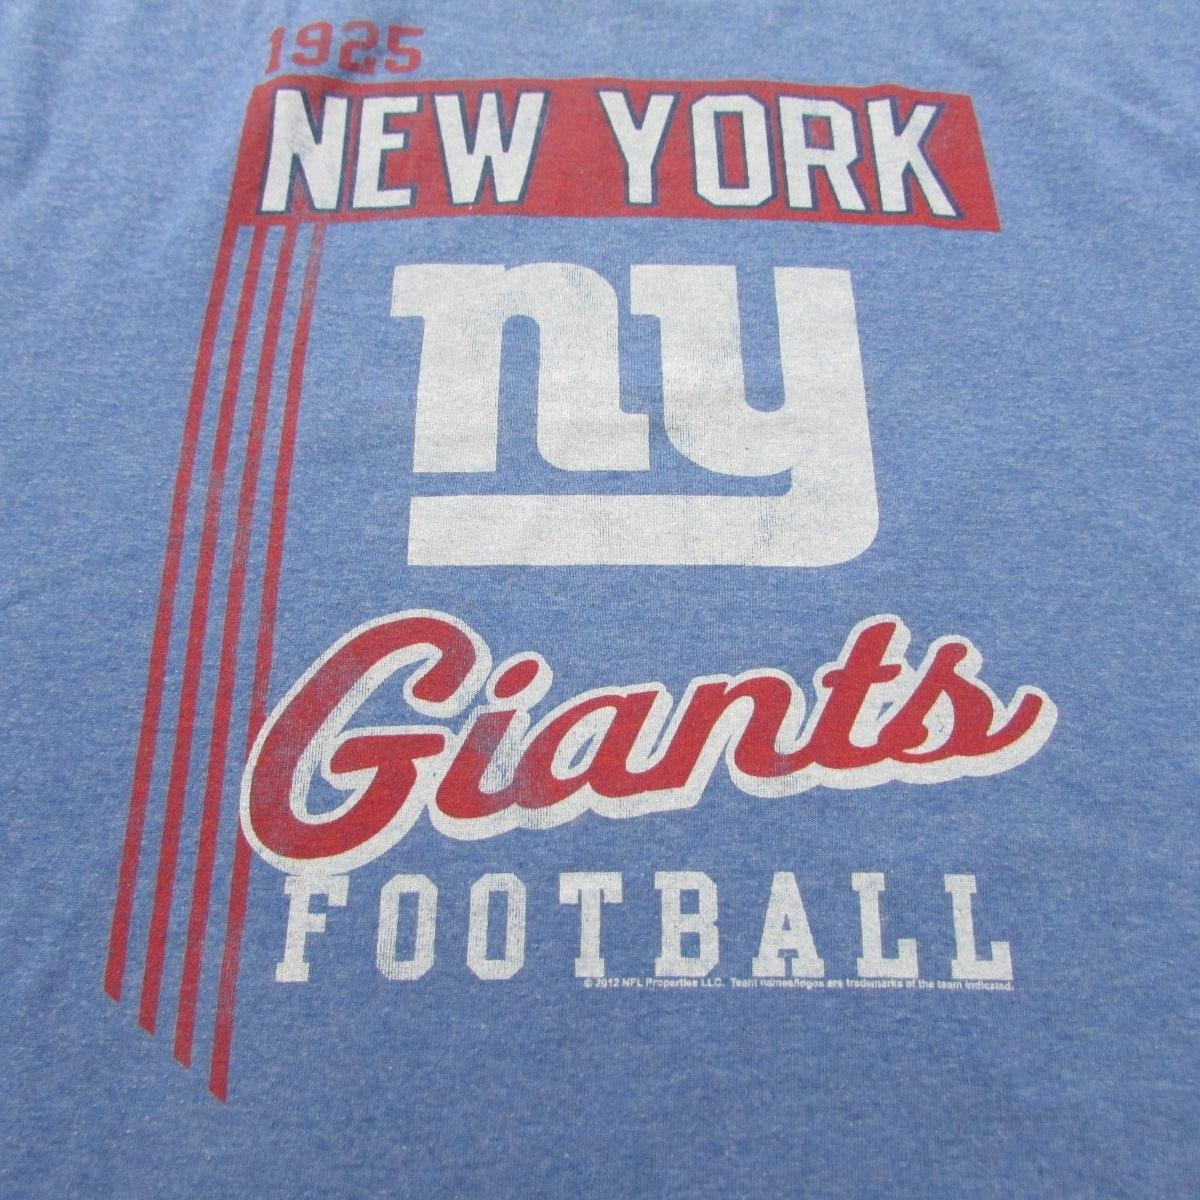 New York Giants Lightweight Football T-Shirt Junk Food Sz L